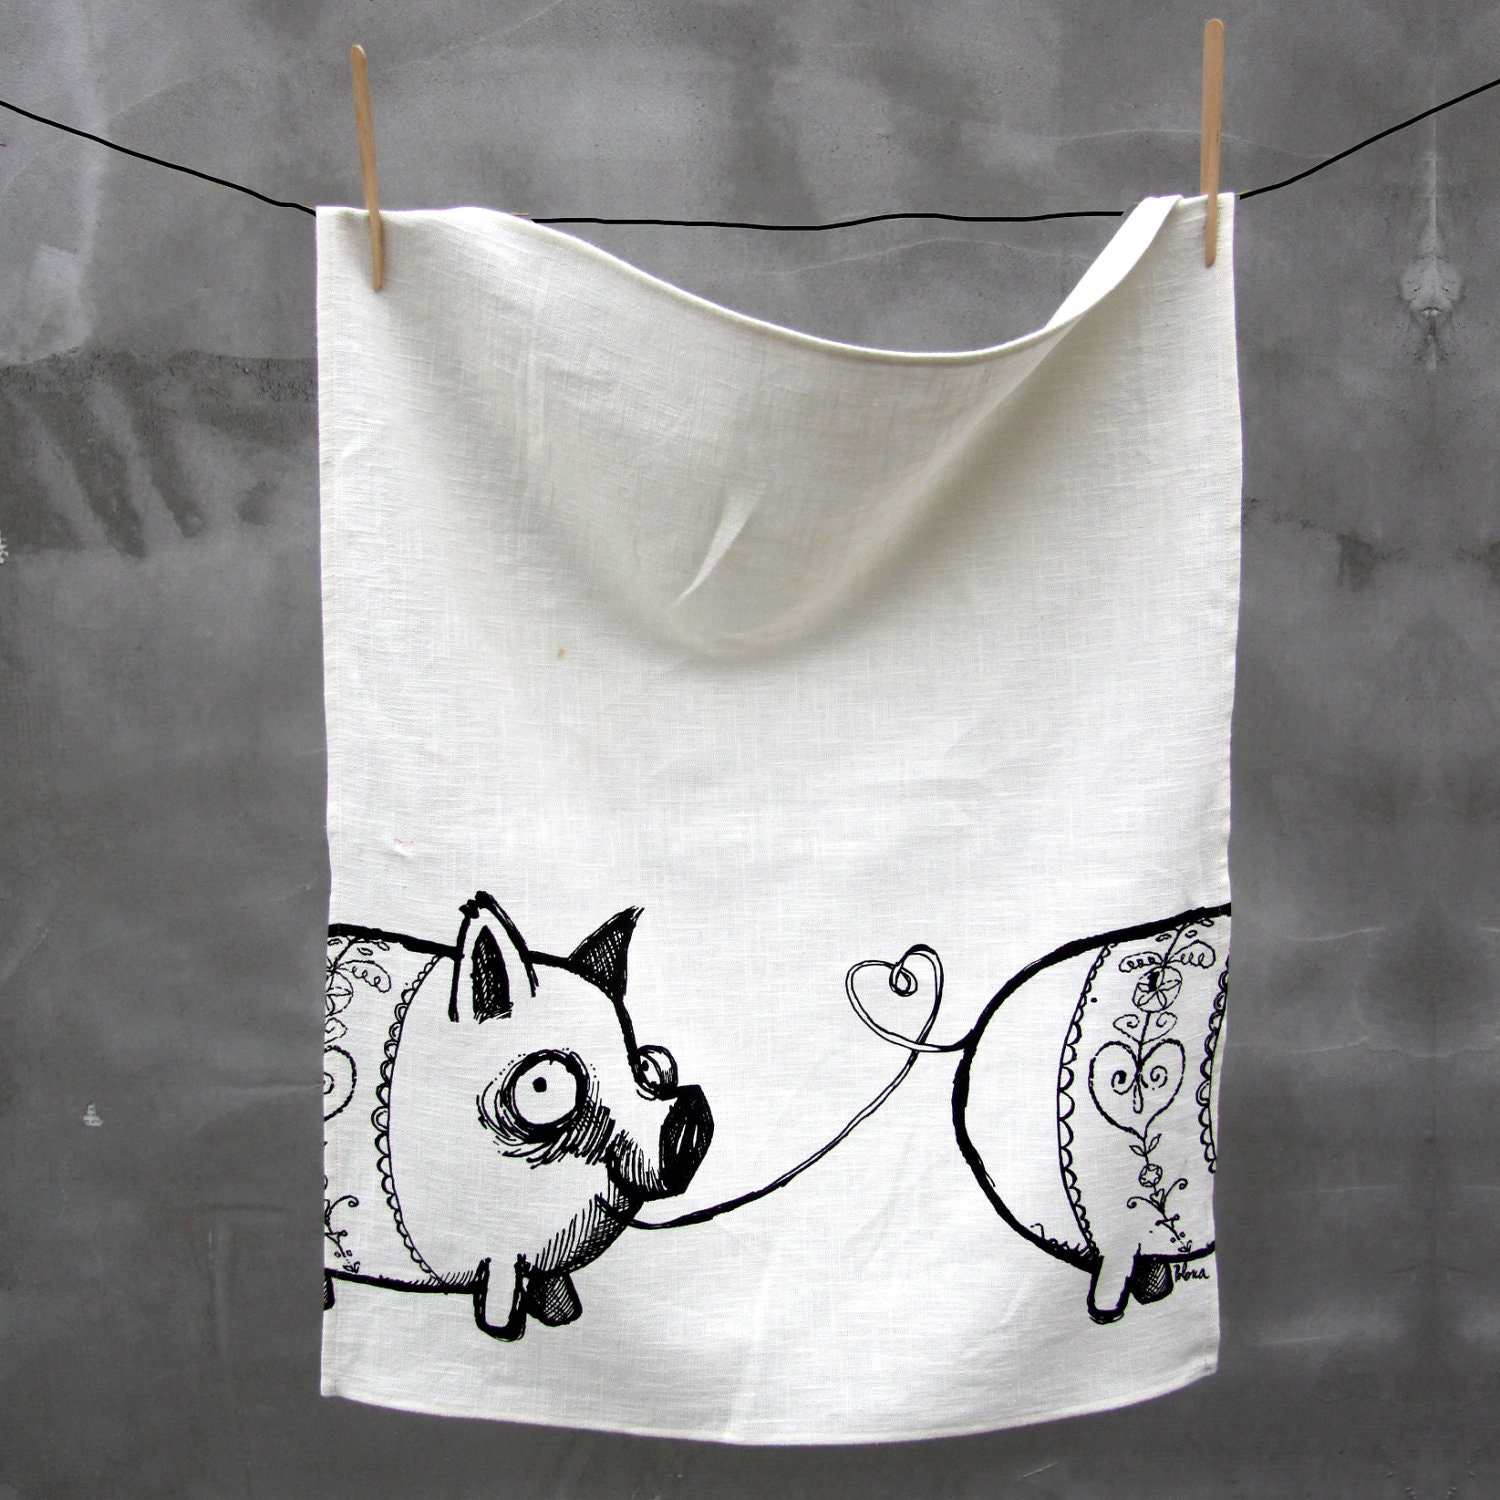 Gingerbread pigs on Kitchen Towel